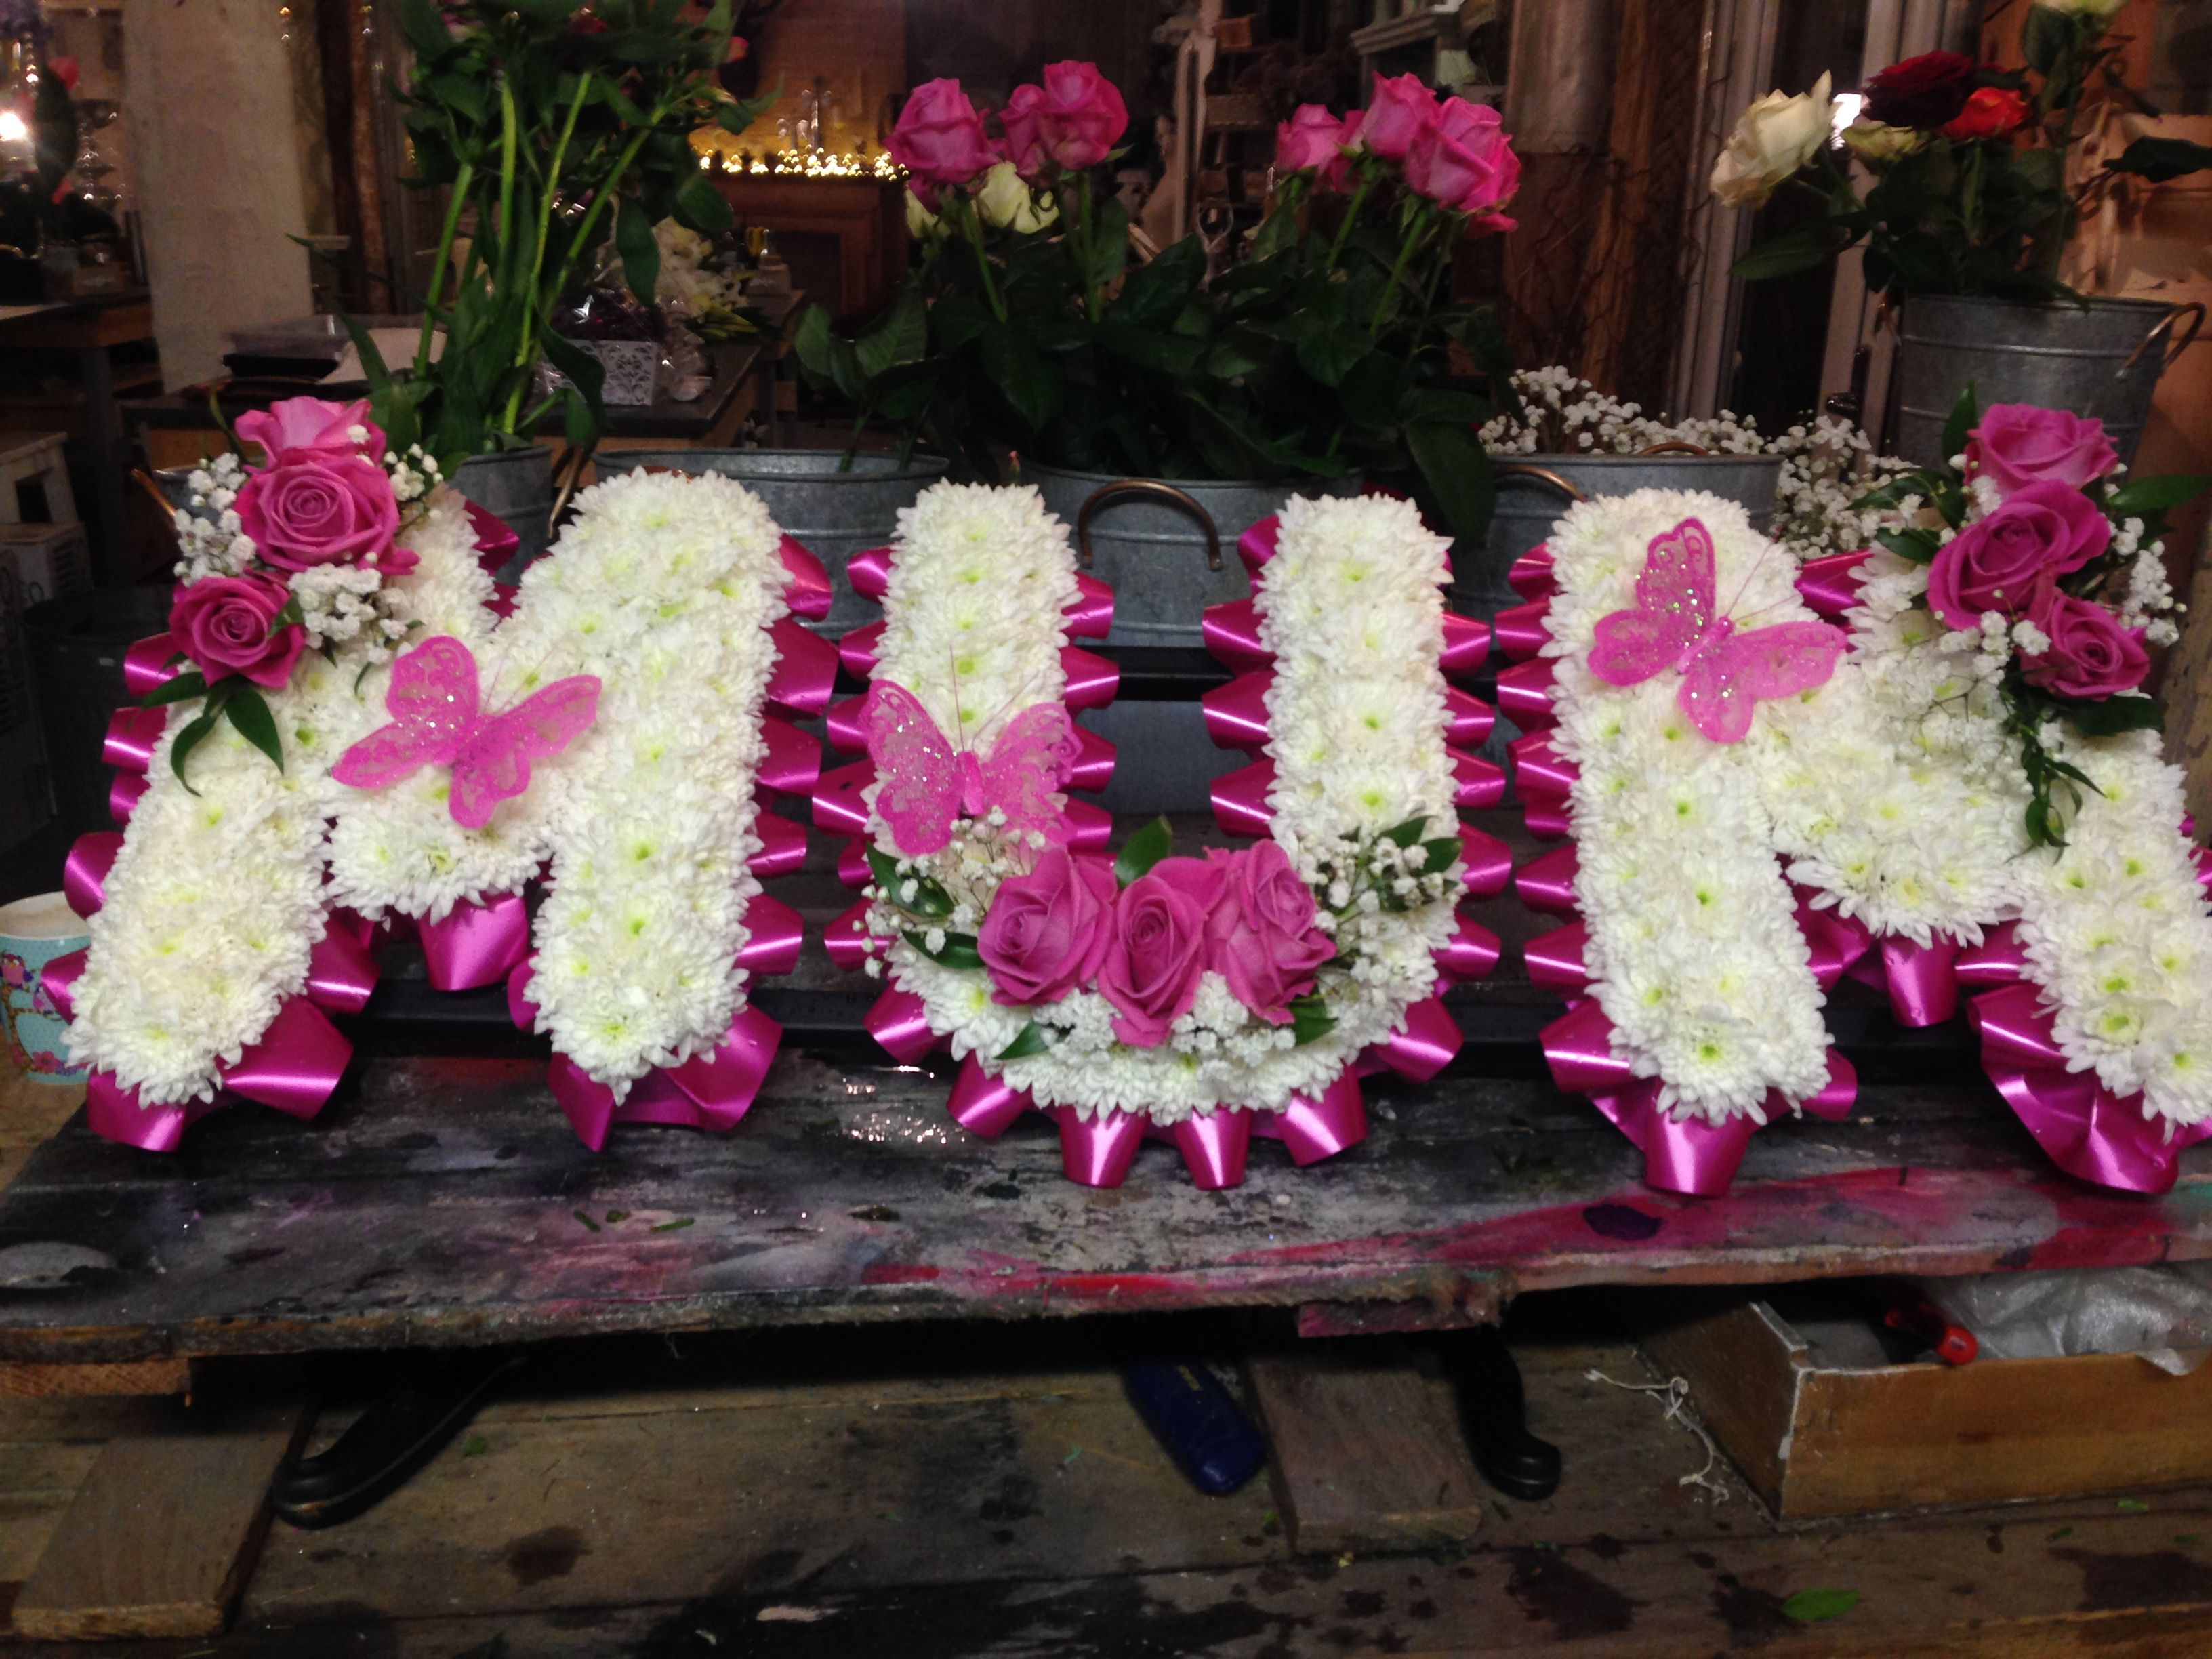 Funeral flowers mum funeral letters hot pink ribbon white funeral flowers mum funeral letters hot pink ribbon white chrysanthemum base pink roses izmirmasajfo Images